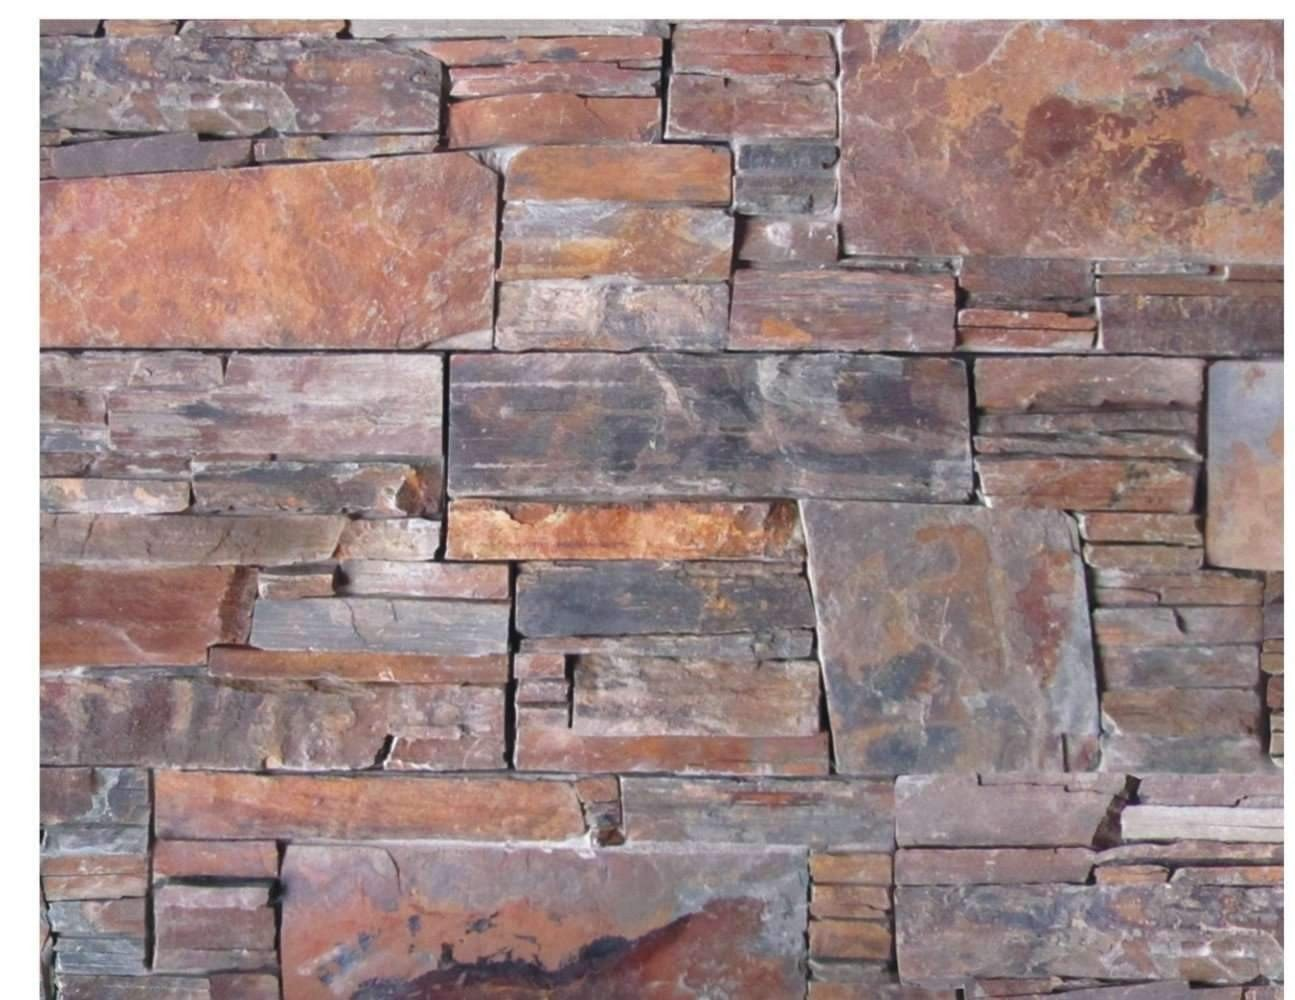 New Mexico - Rough Cut Slate cheap stone veneer clearance - Discount Stones wholesale stone veneer, cheap brick veneer, cultured stone for sale